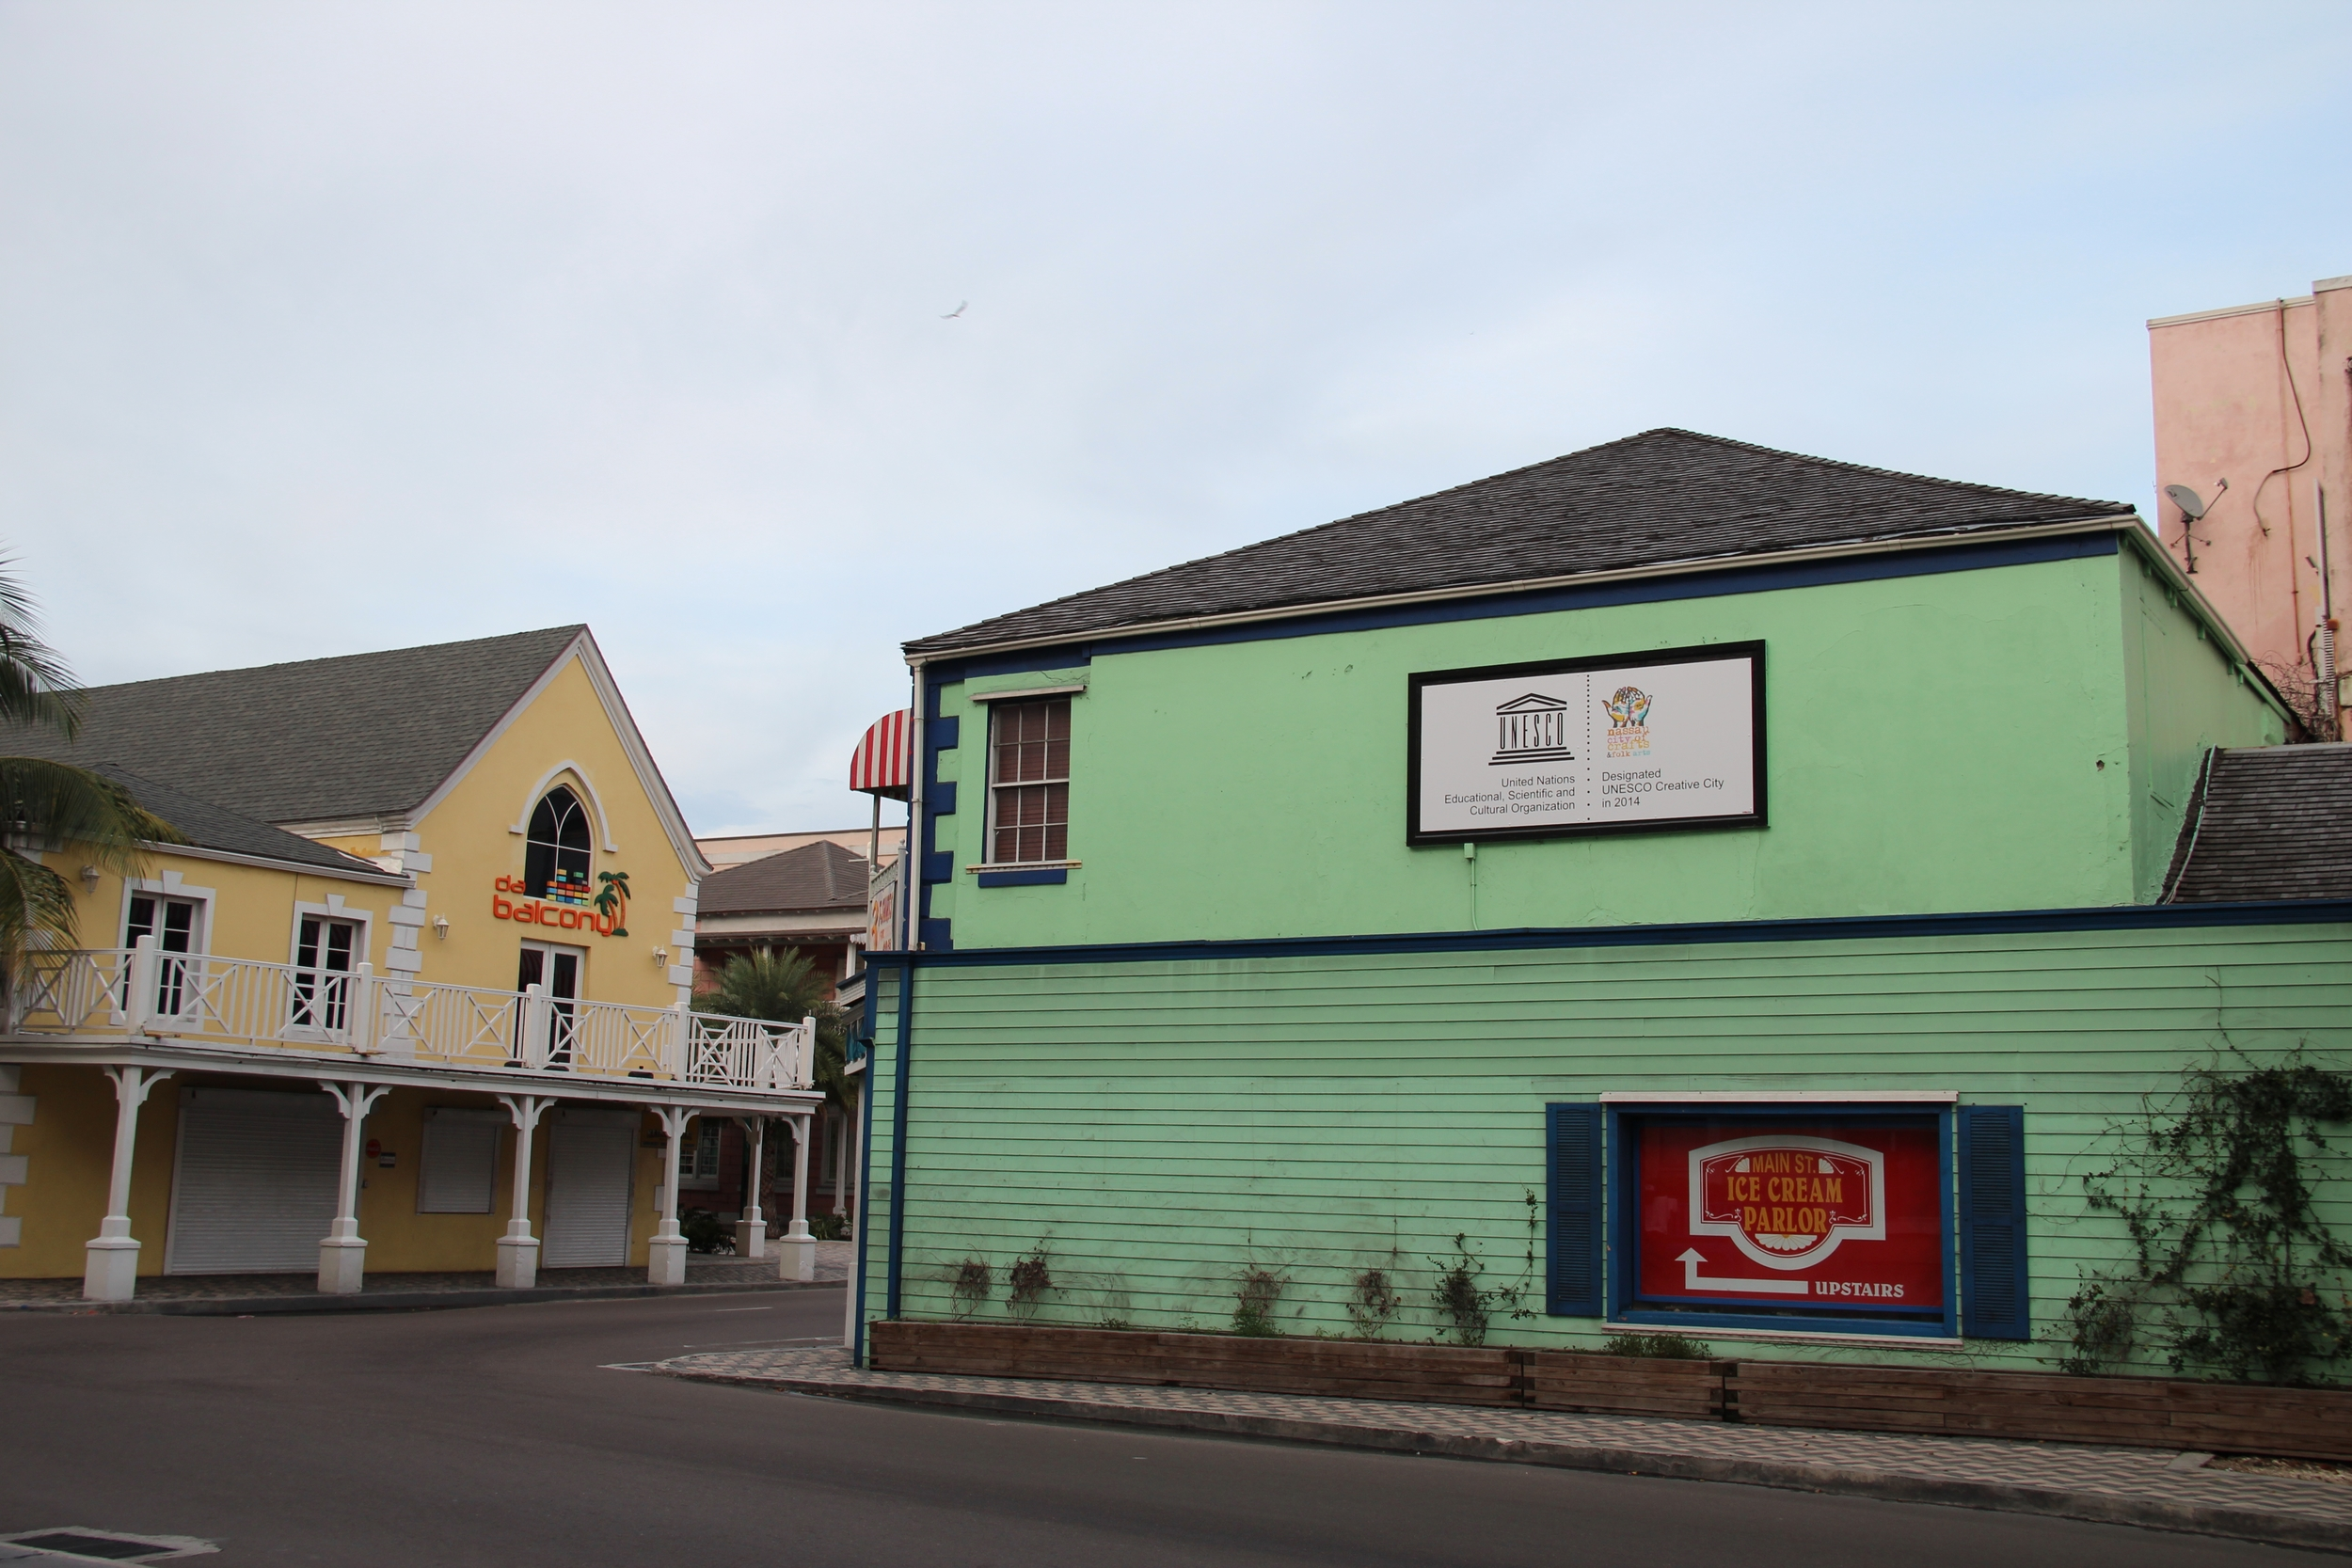 The UNESCO Creative Cities banner proudly displayed at the entrance of Downtown Bay Street in the City of Nassau, Bahamas. Photograph by Rosemary C. Hanna